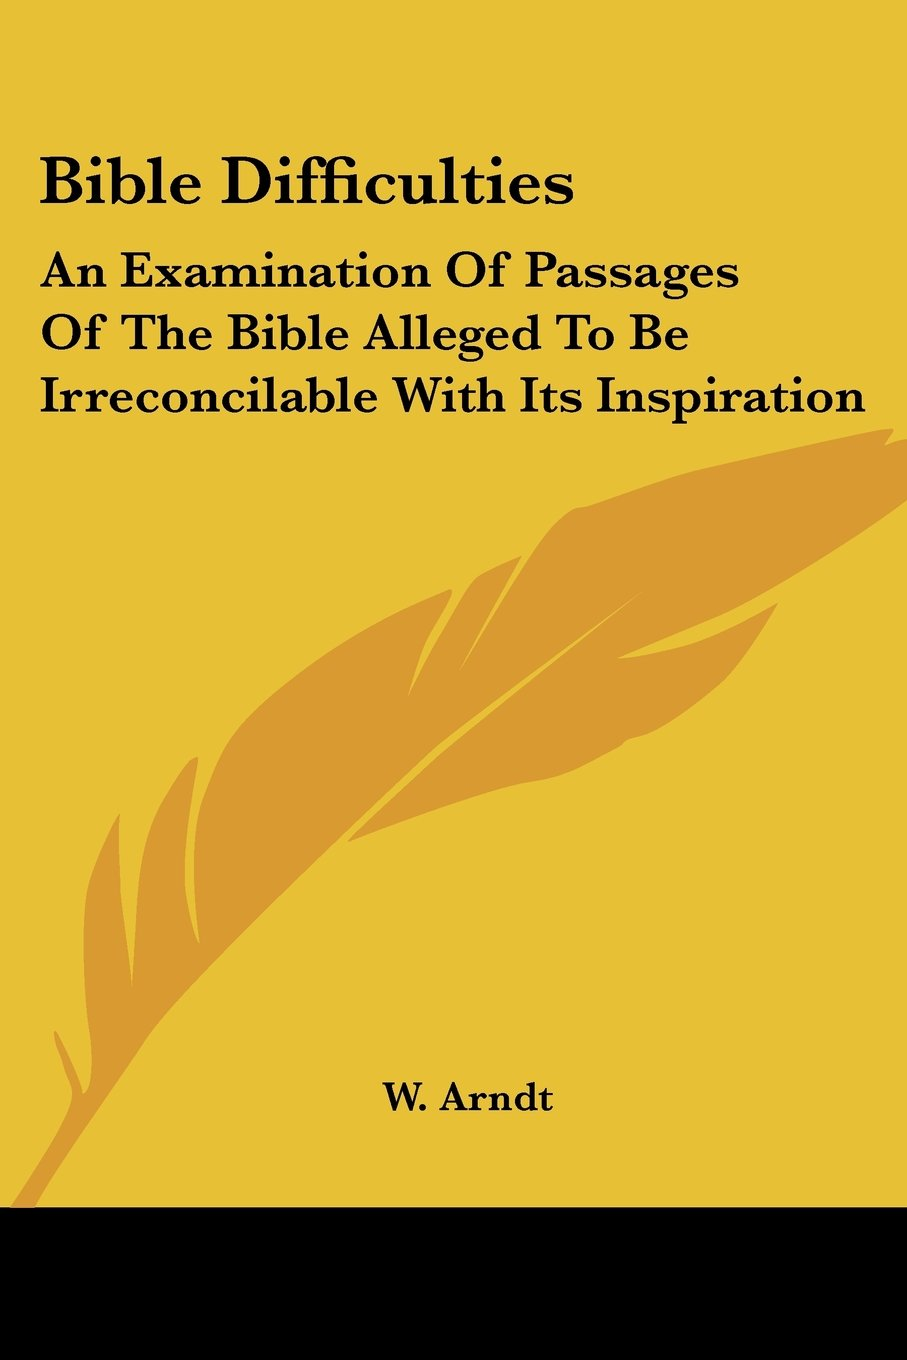 Bible Difficulties: An Examination Of Passages Of The Bible Alleged To Be Irreconcilable With Its Inspiration ebook